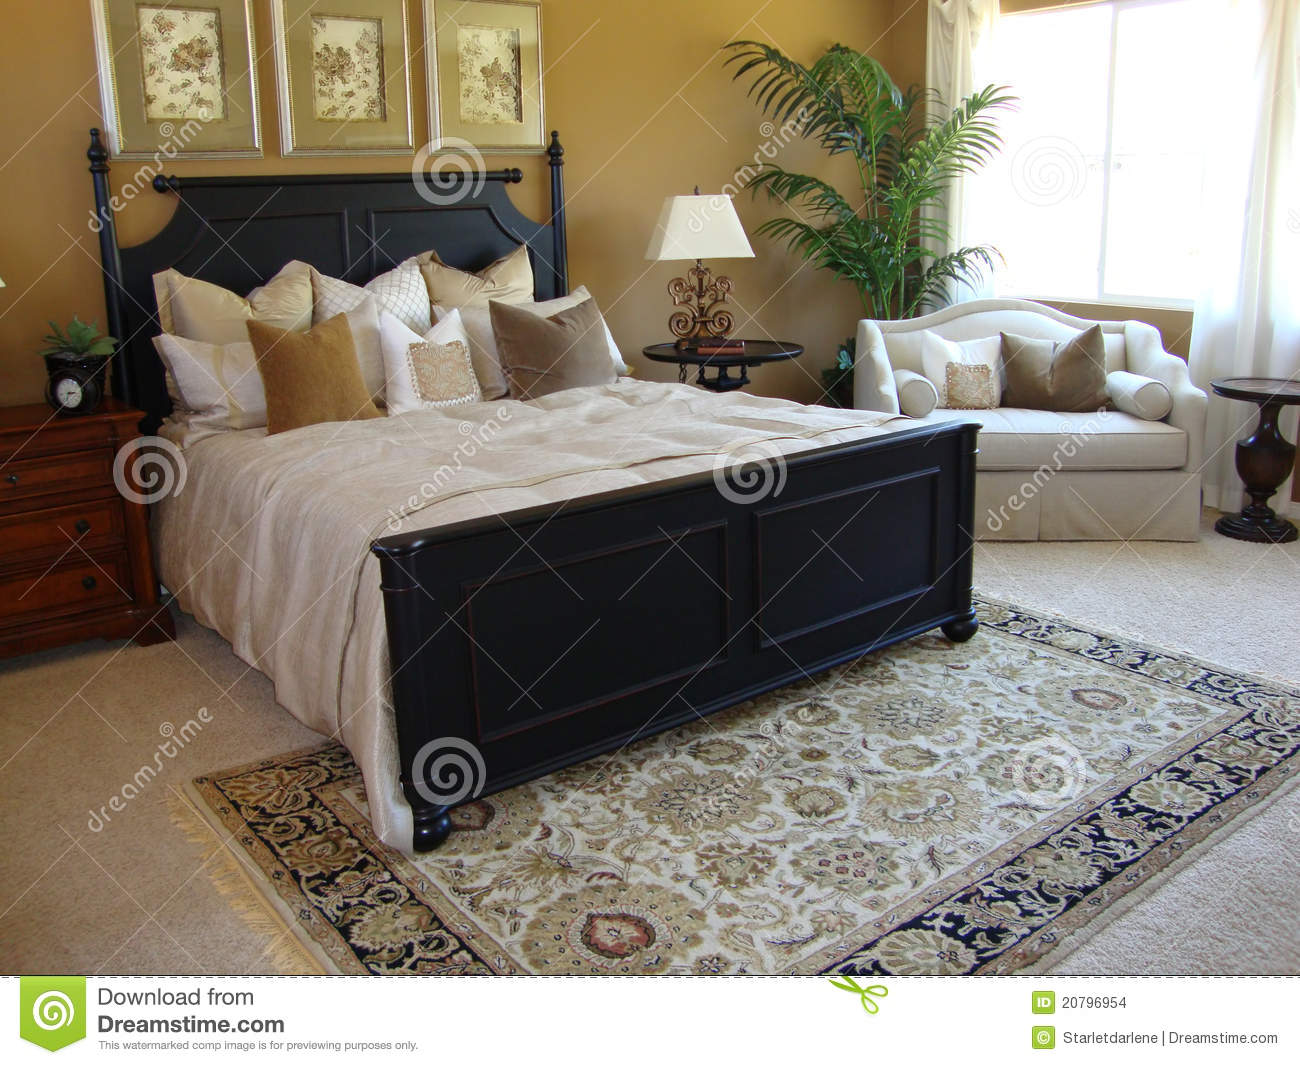 Beautiful master bedroom suite stock photo image 20796954 for Beautiful bedroom pics